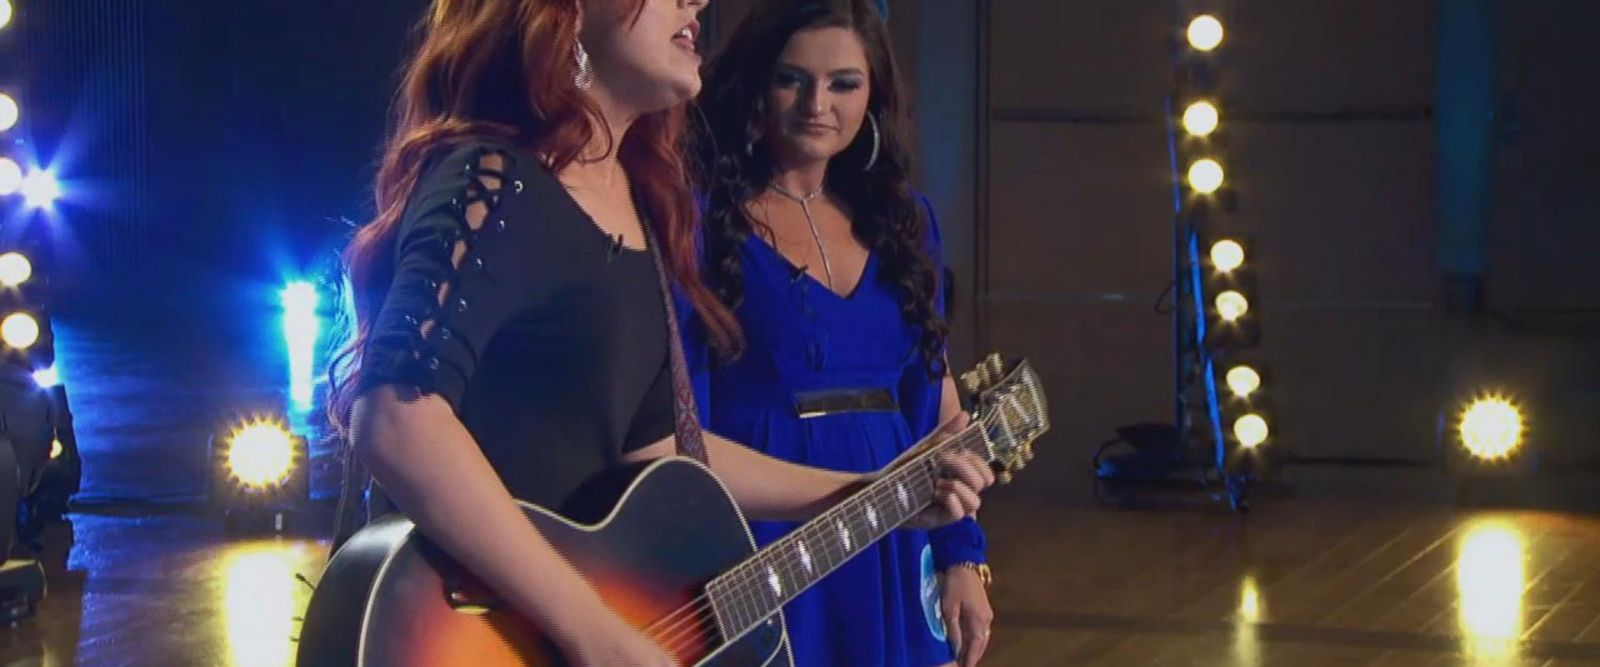 VIDEO: Sisters advance to the next round of 'American Idol'